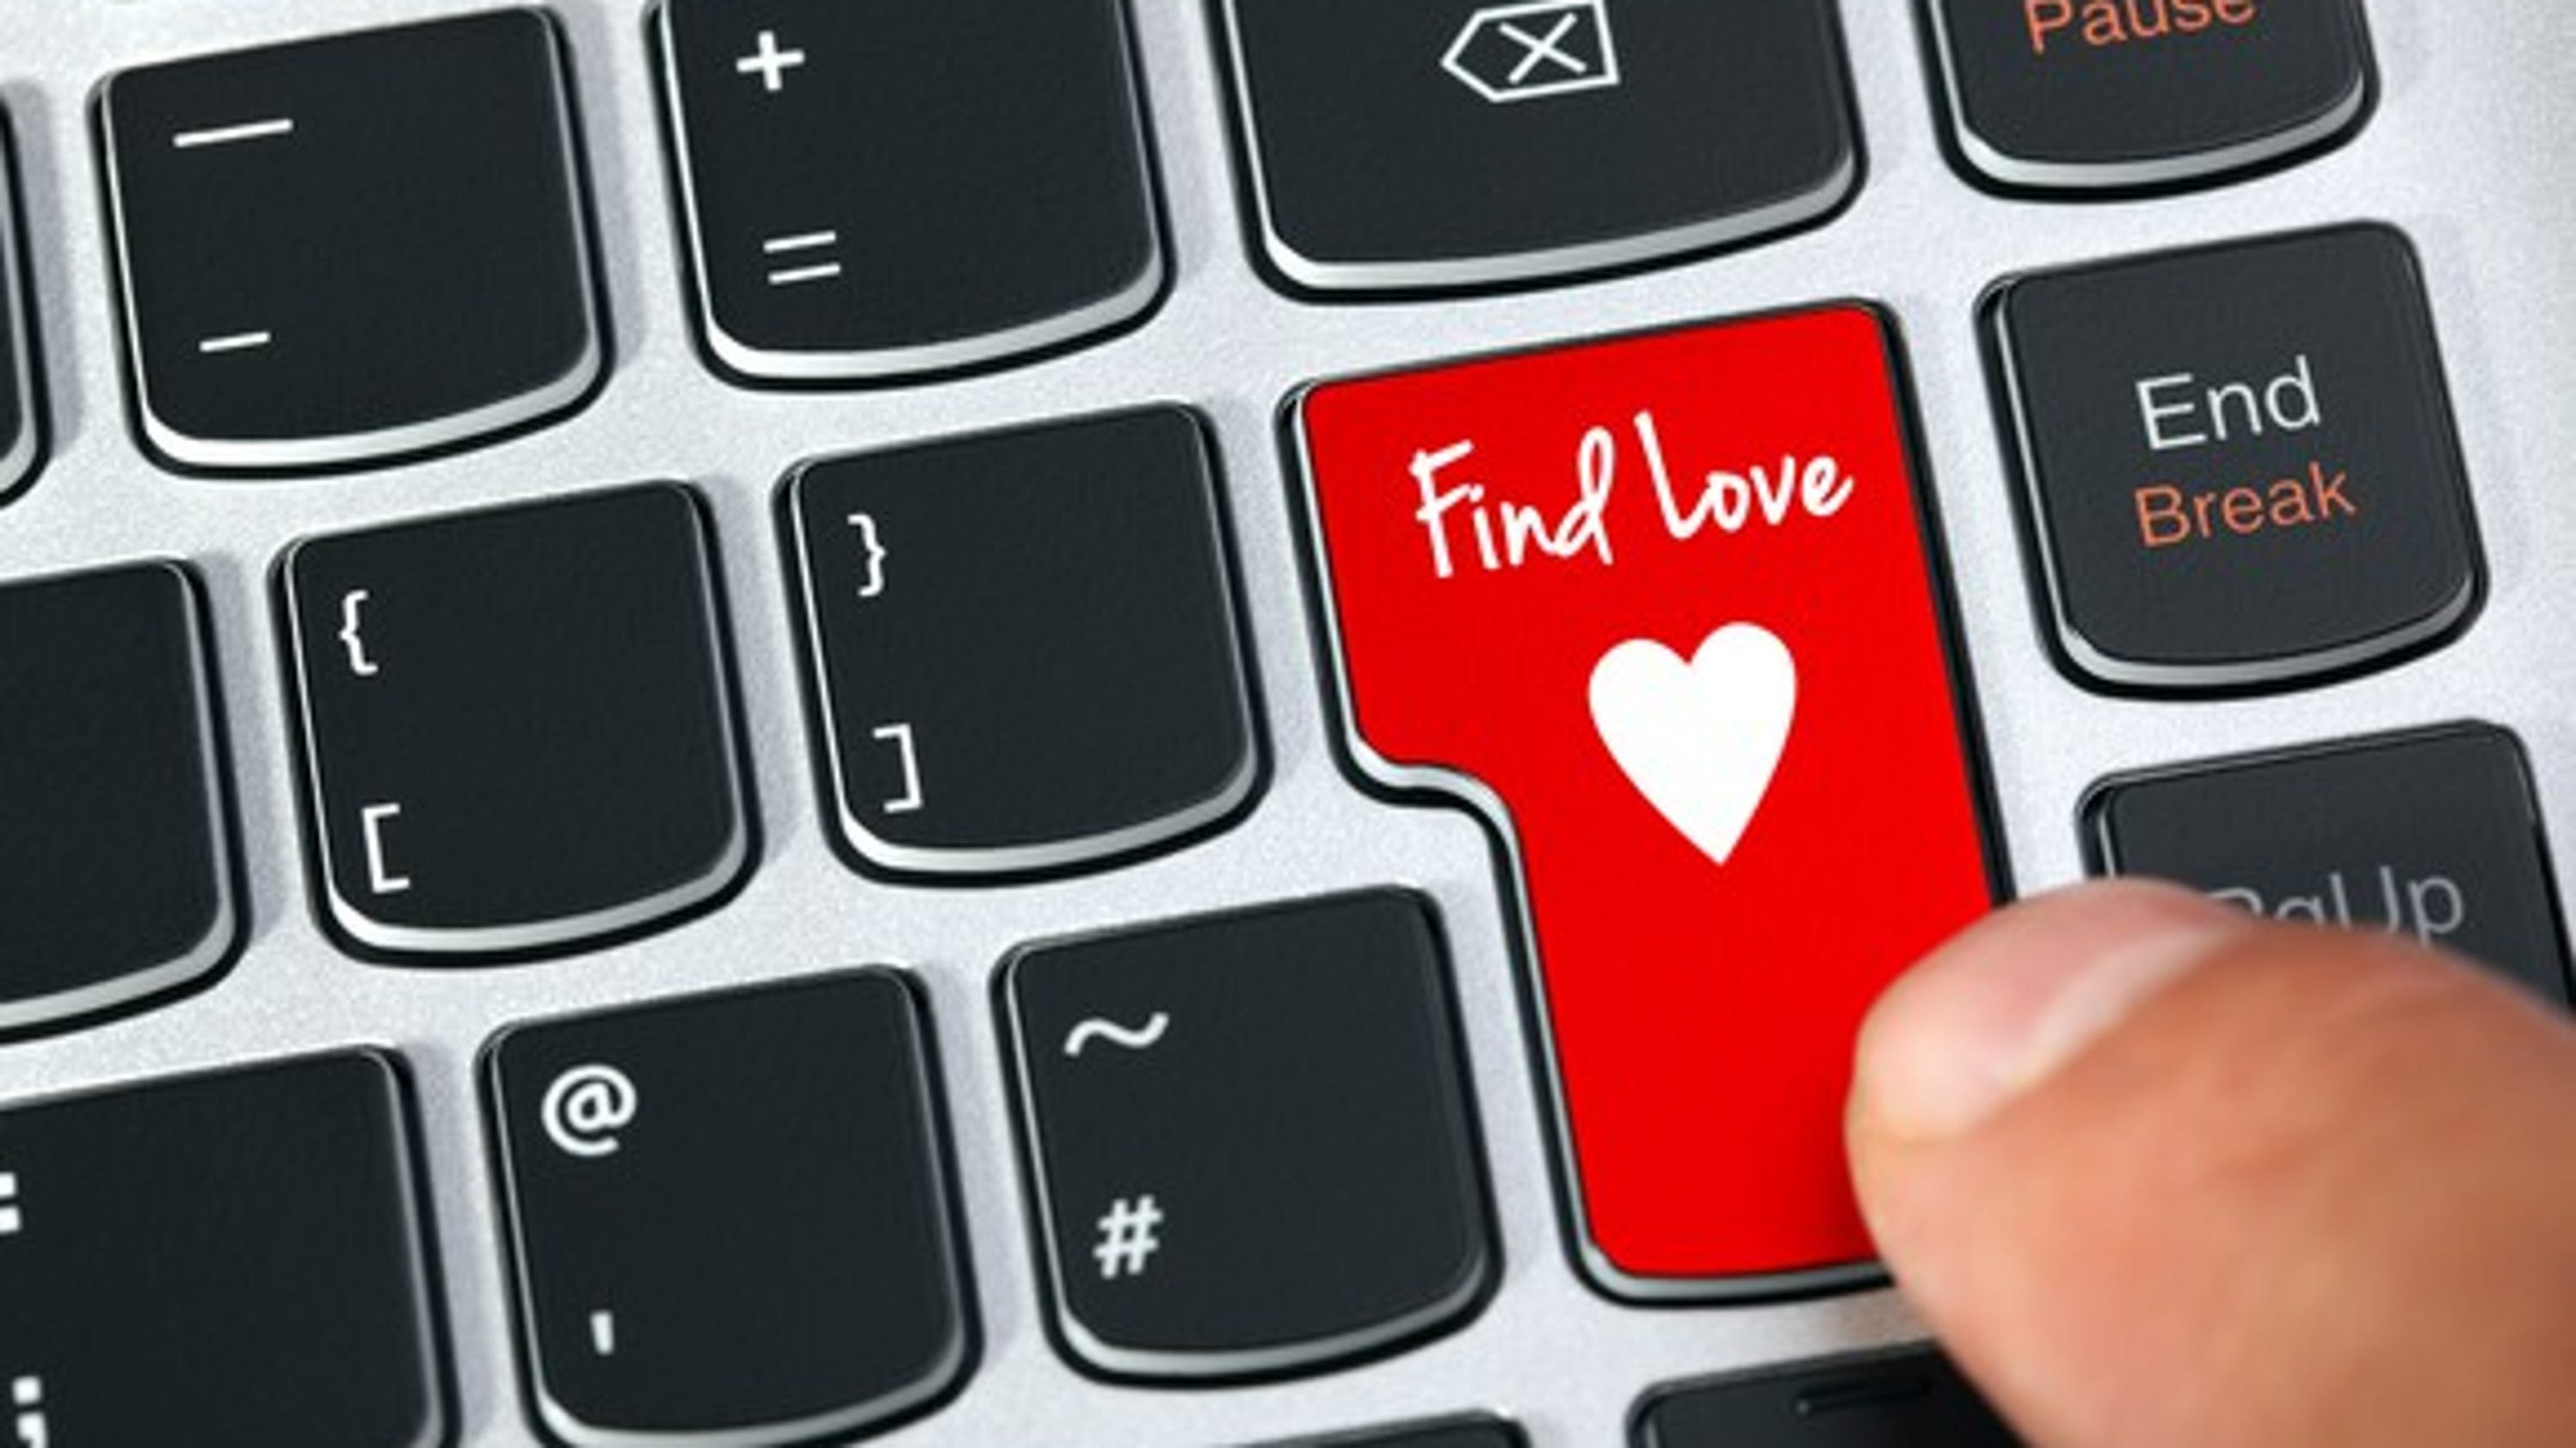 Online dating: protect your identity on dating apps and keep out the creeps